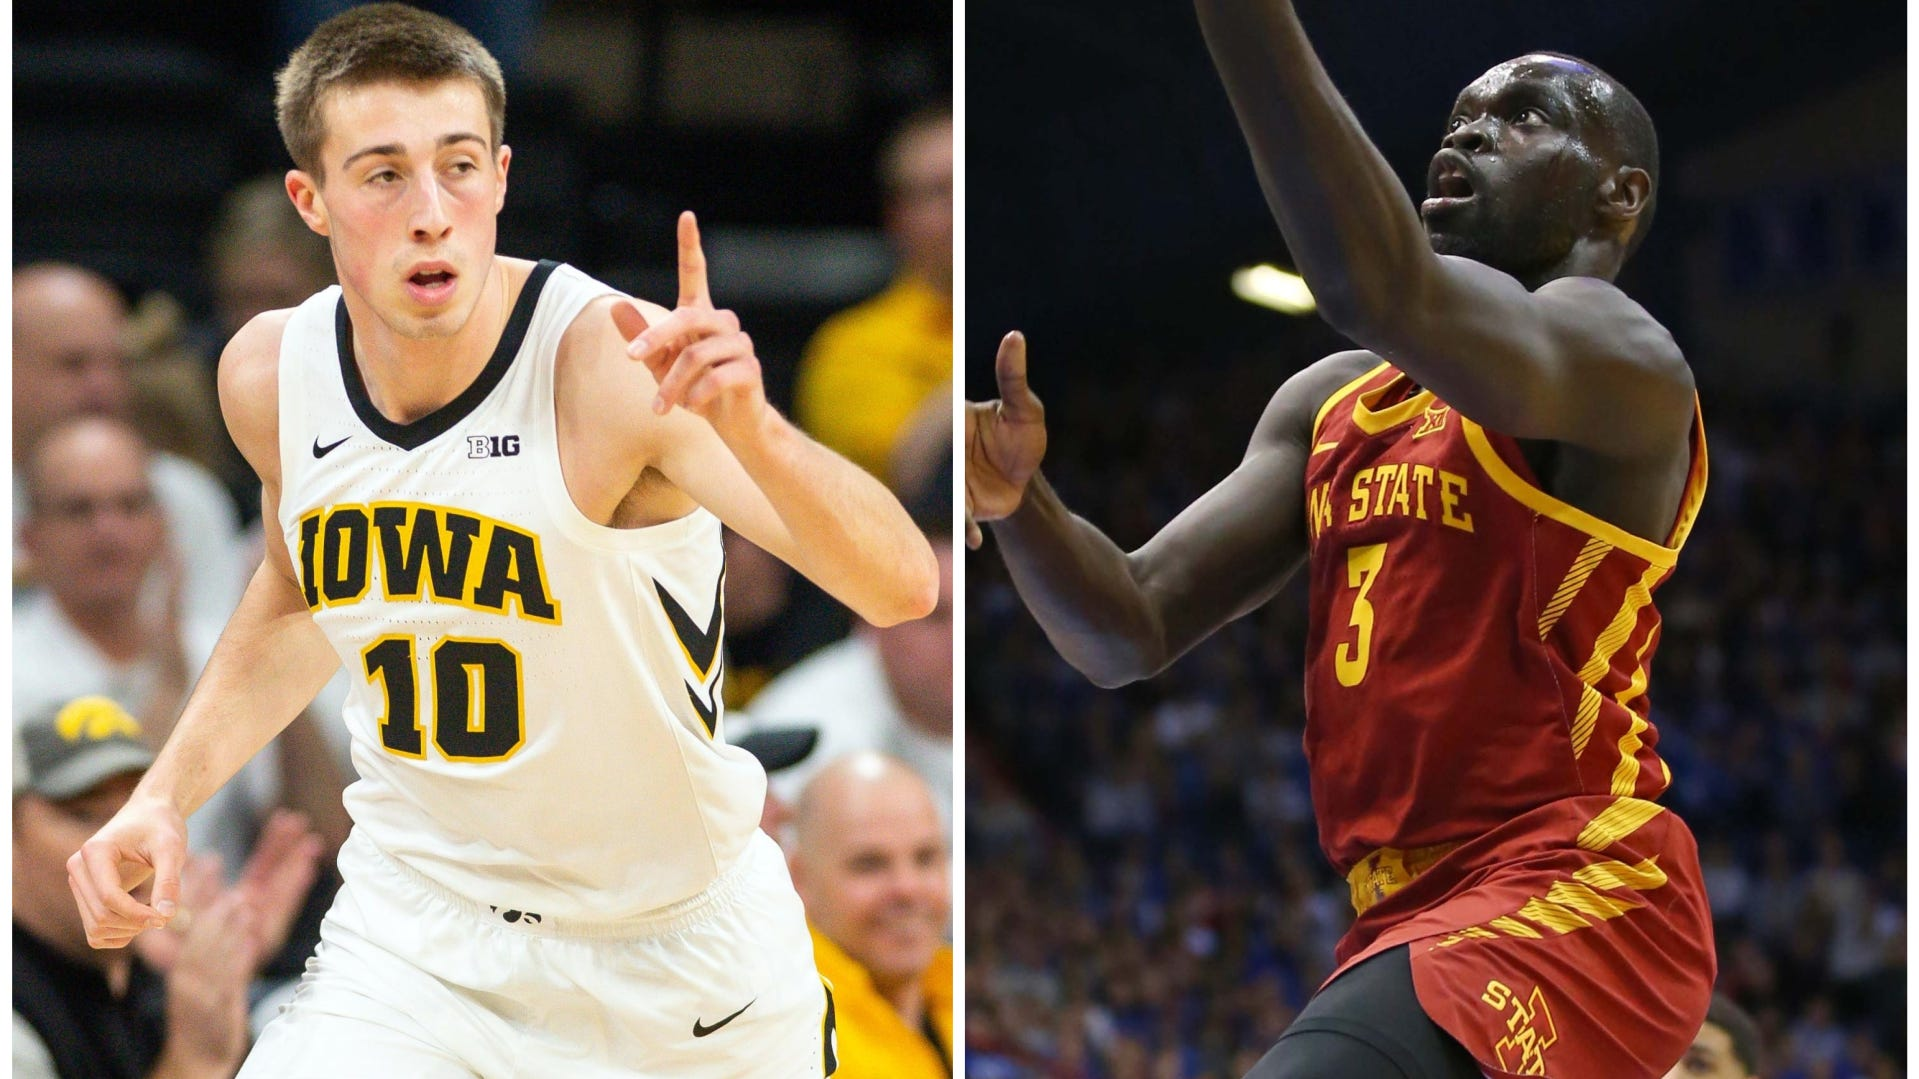 Iowa's Joe Wieskamp and Iowa State's Marial Shayok have helped lead the Hawkeyes and Cyclones into comfortable NCAA Tournament positions at the end of January.